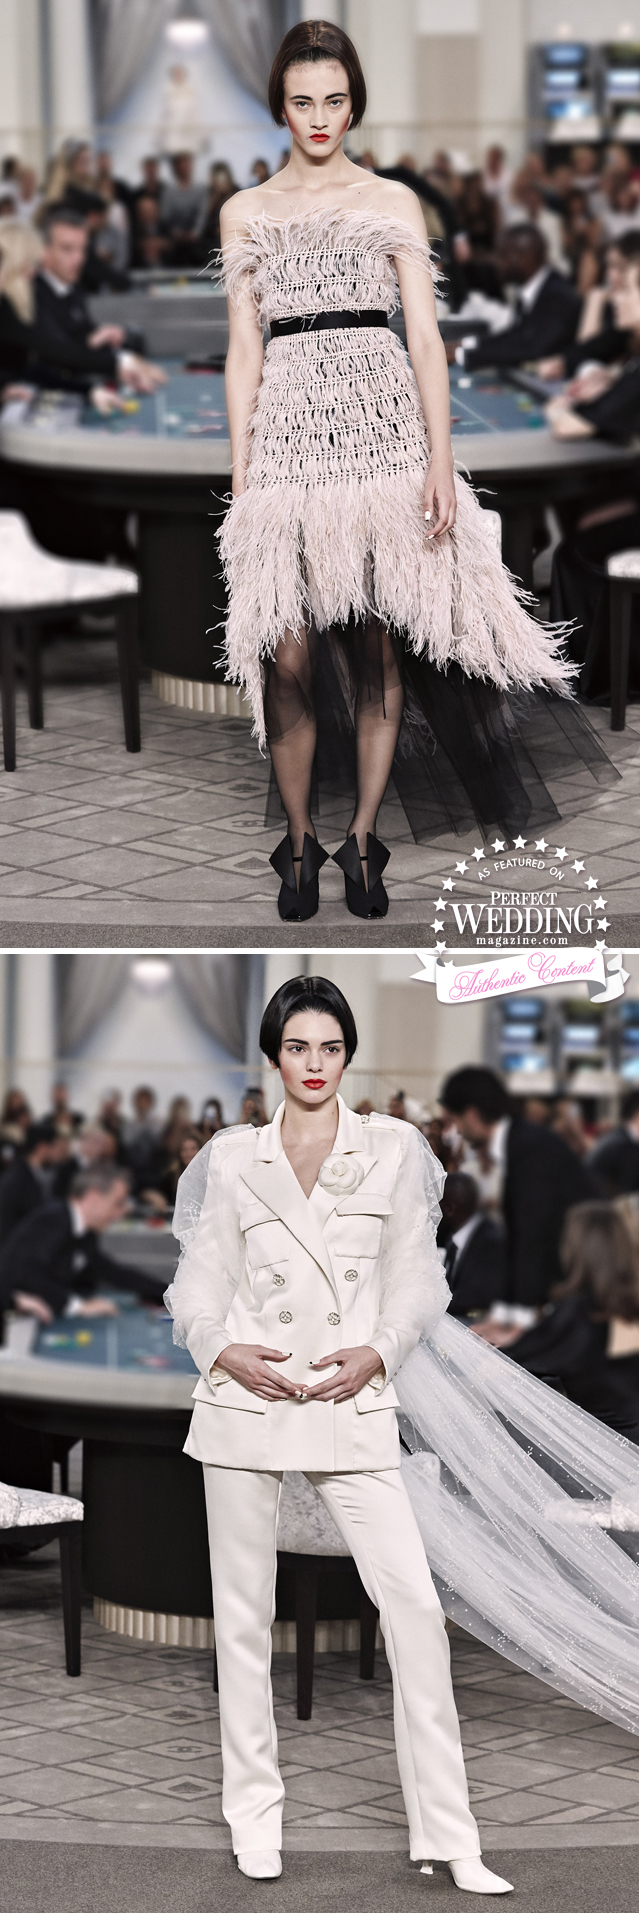 Chanel, Chanel Haute Couture, Chanel Fall Winter Haute Couture, Paris Fashion Week, Perfect Wedding Magazine, Perfect Wedding Magazine blog